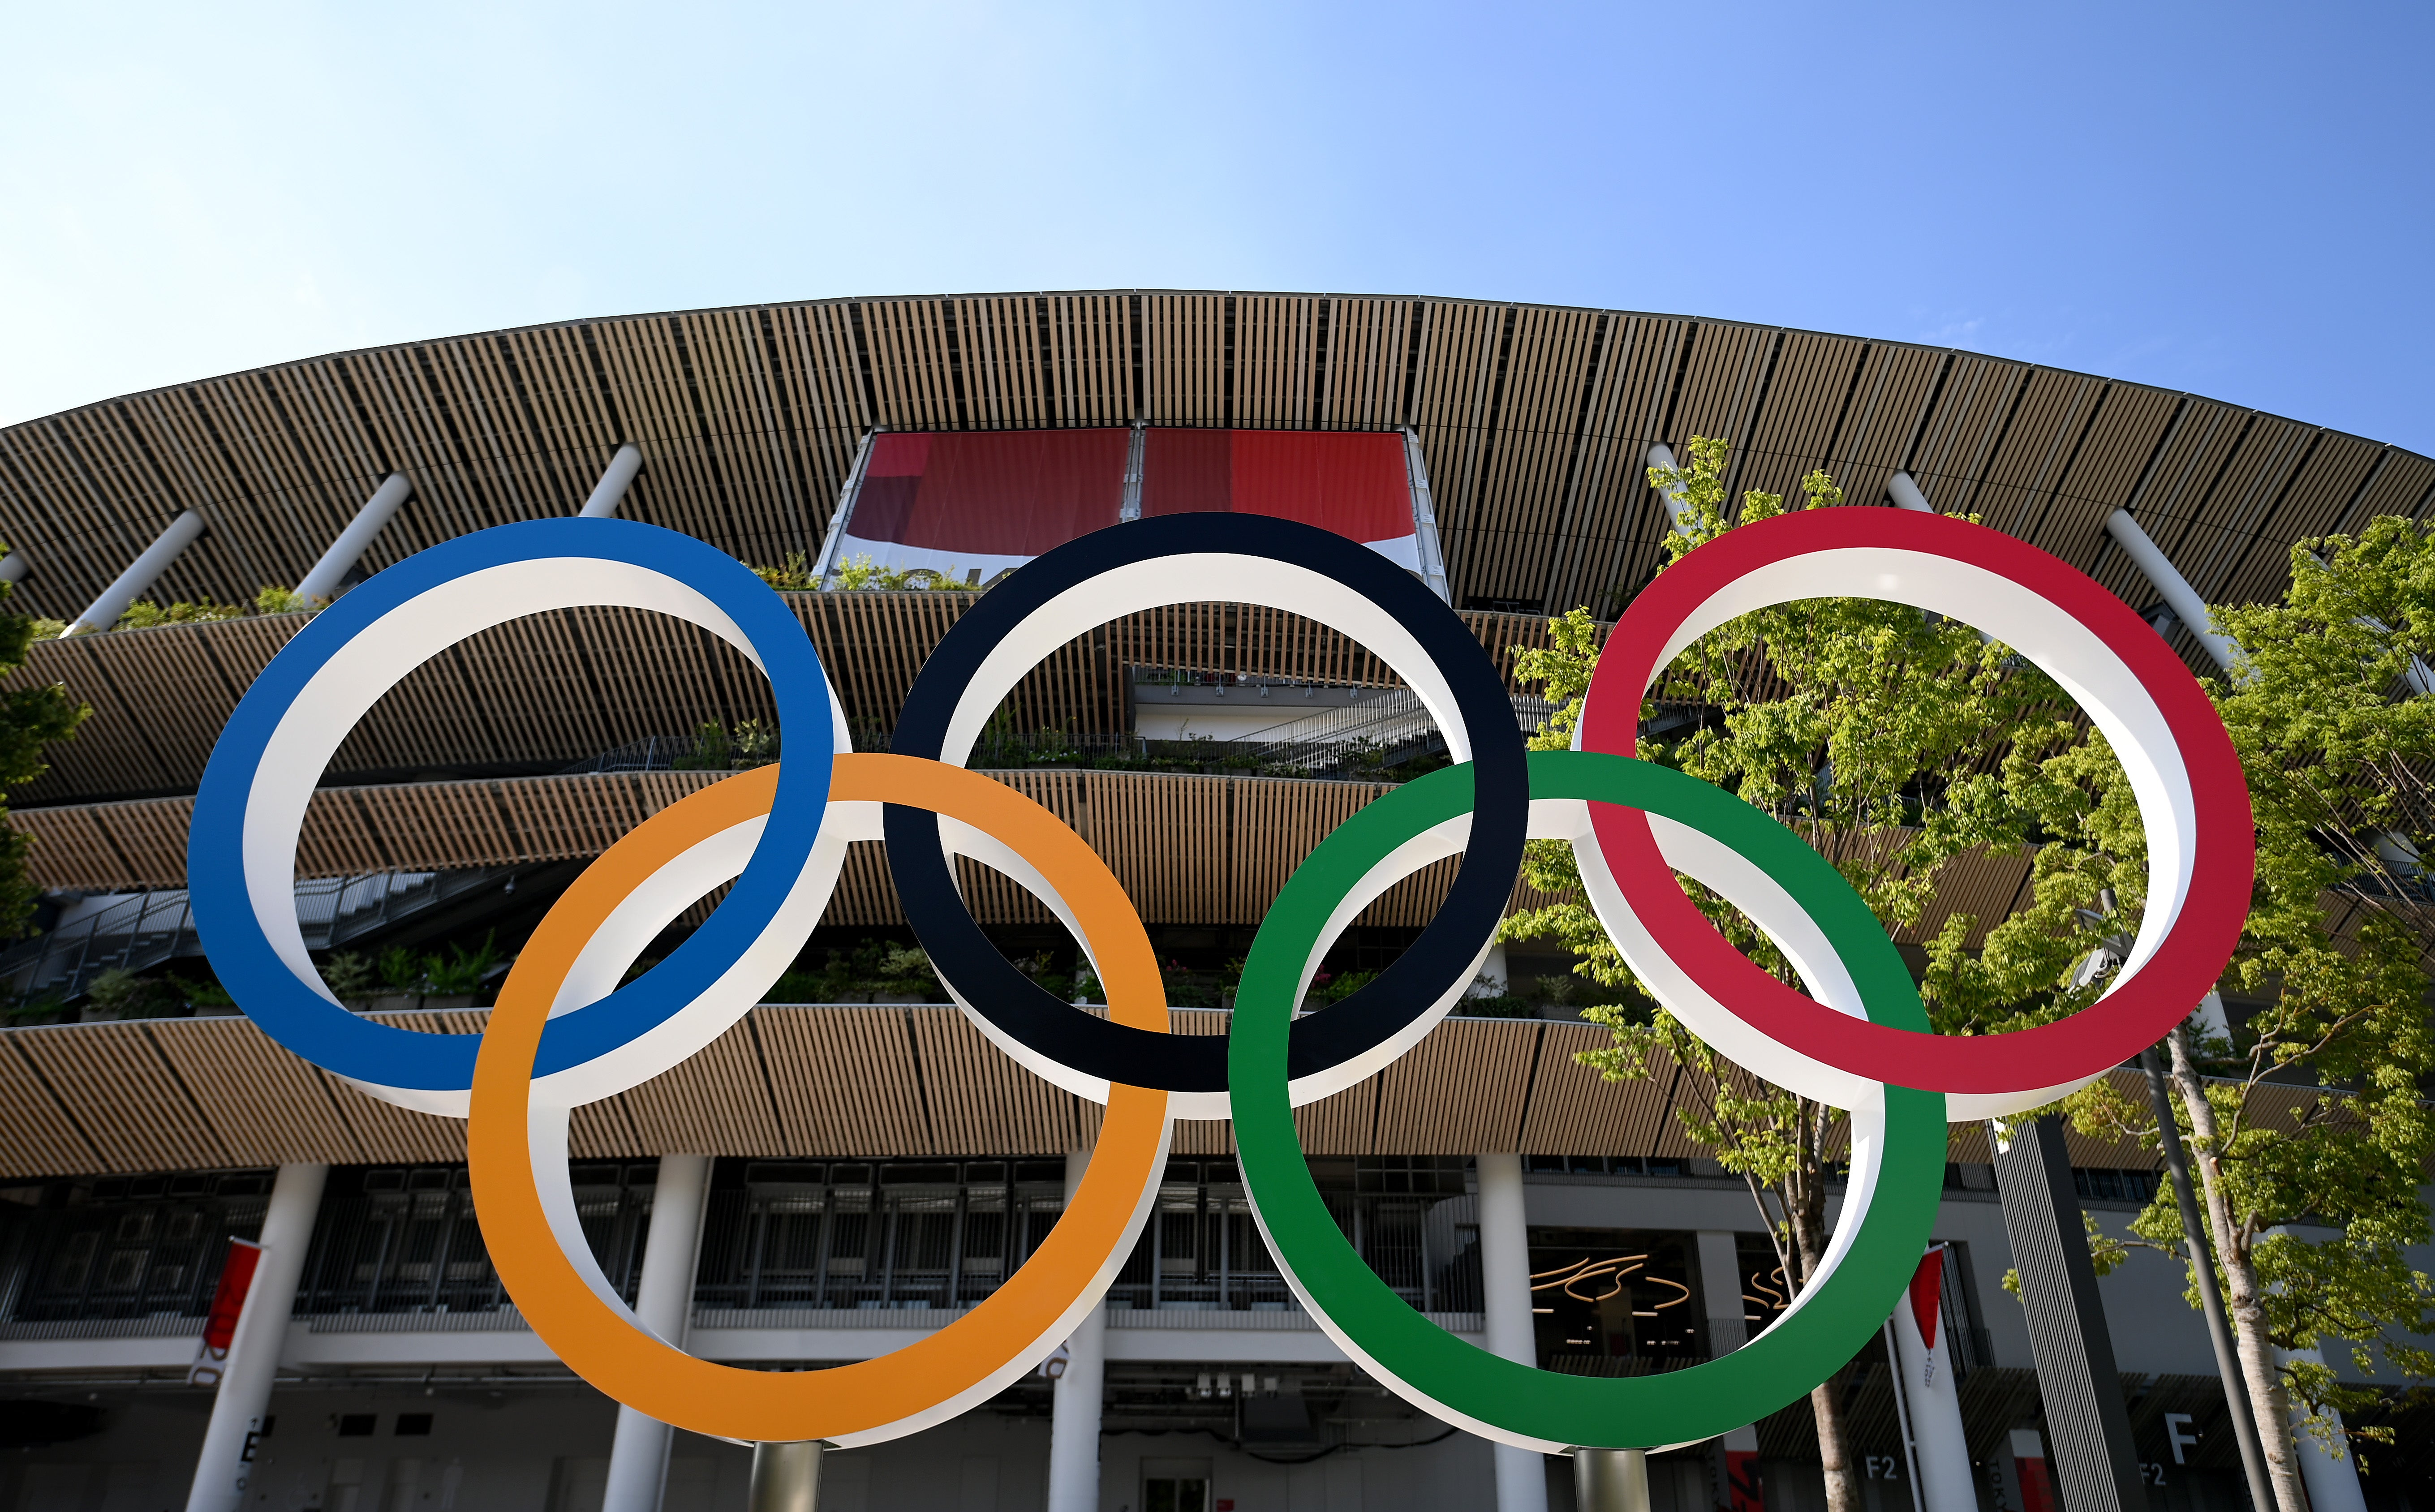 independent.co.uk - Lawrence Ostlere - Olympic opening ceremony musician accuses Tokyo 2020 organisers of racism